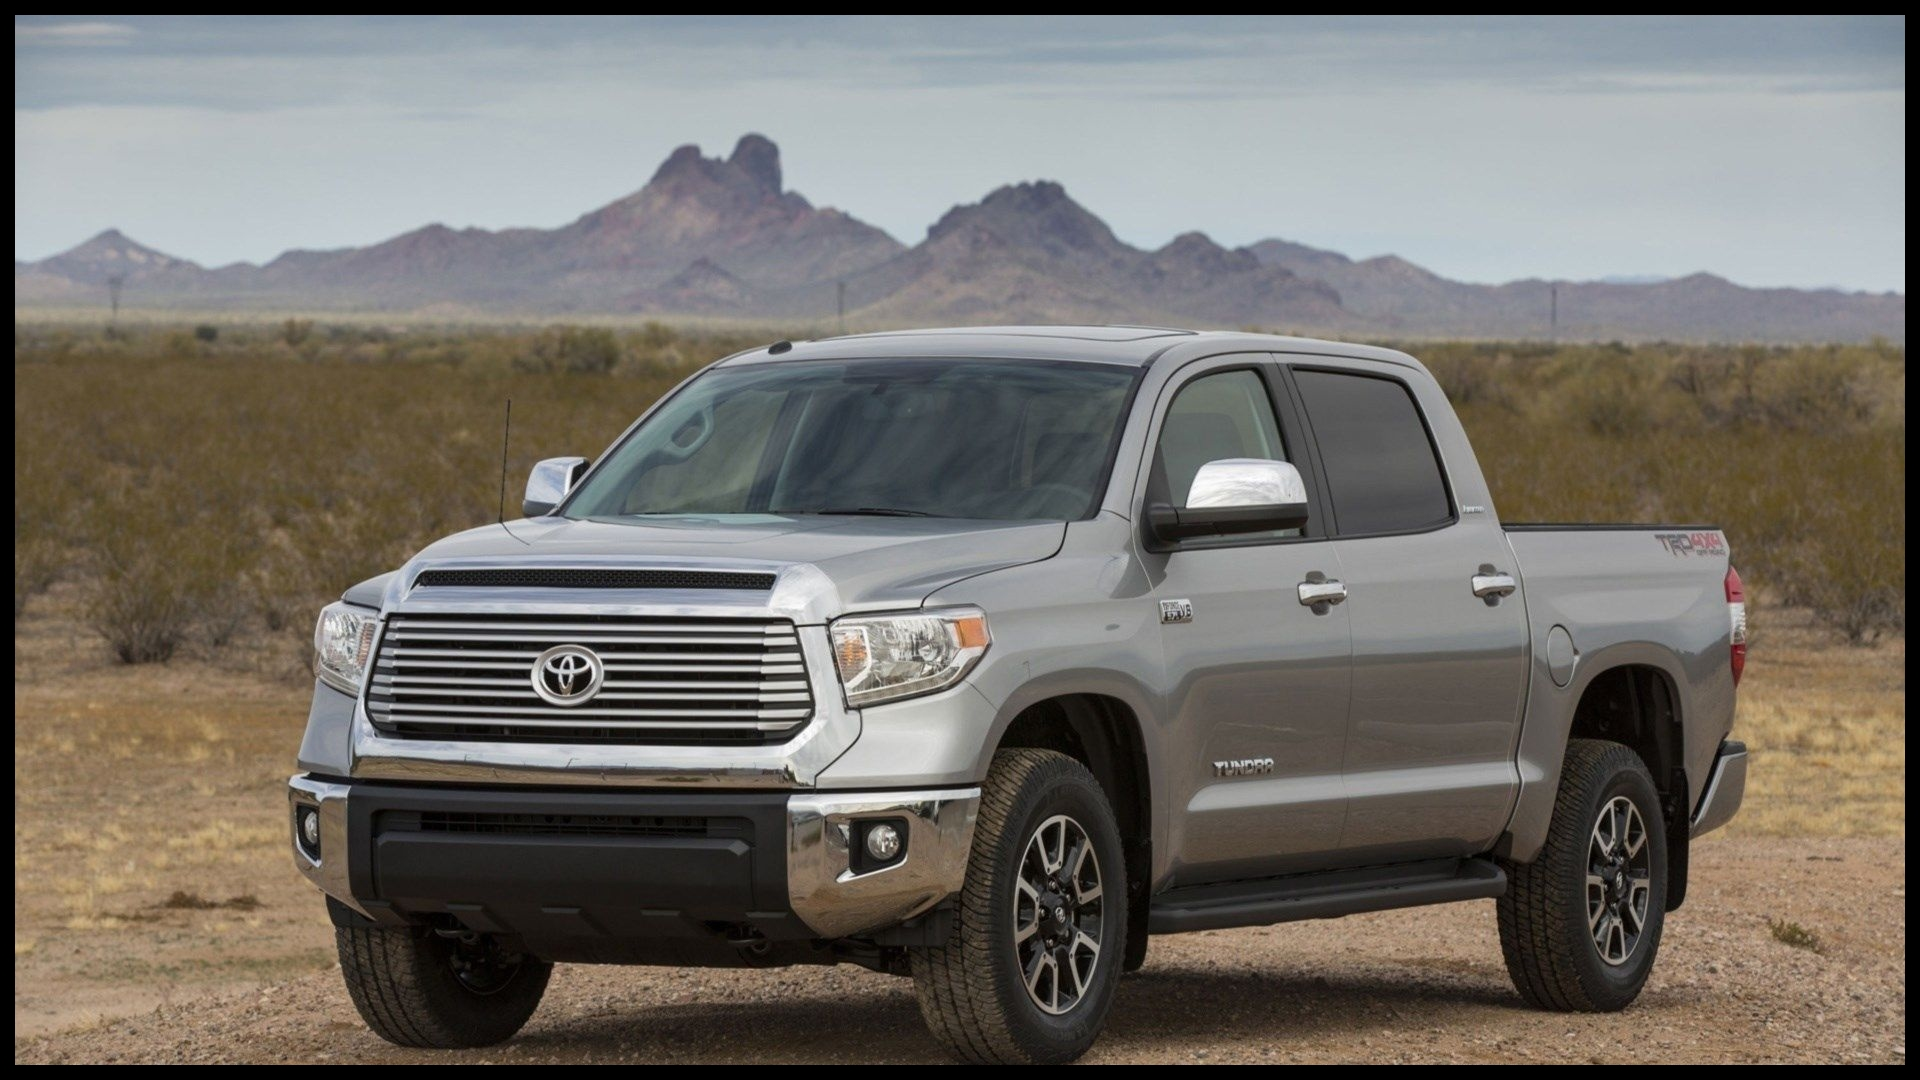 Hot Fresh Diesel Tundra Mpg First Drive